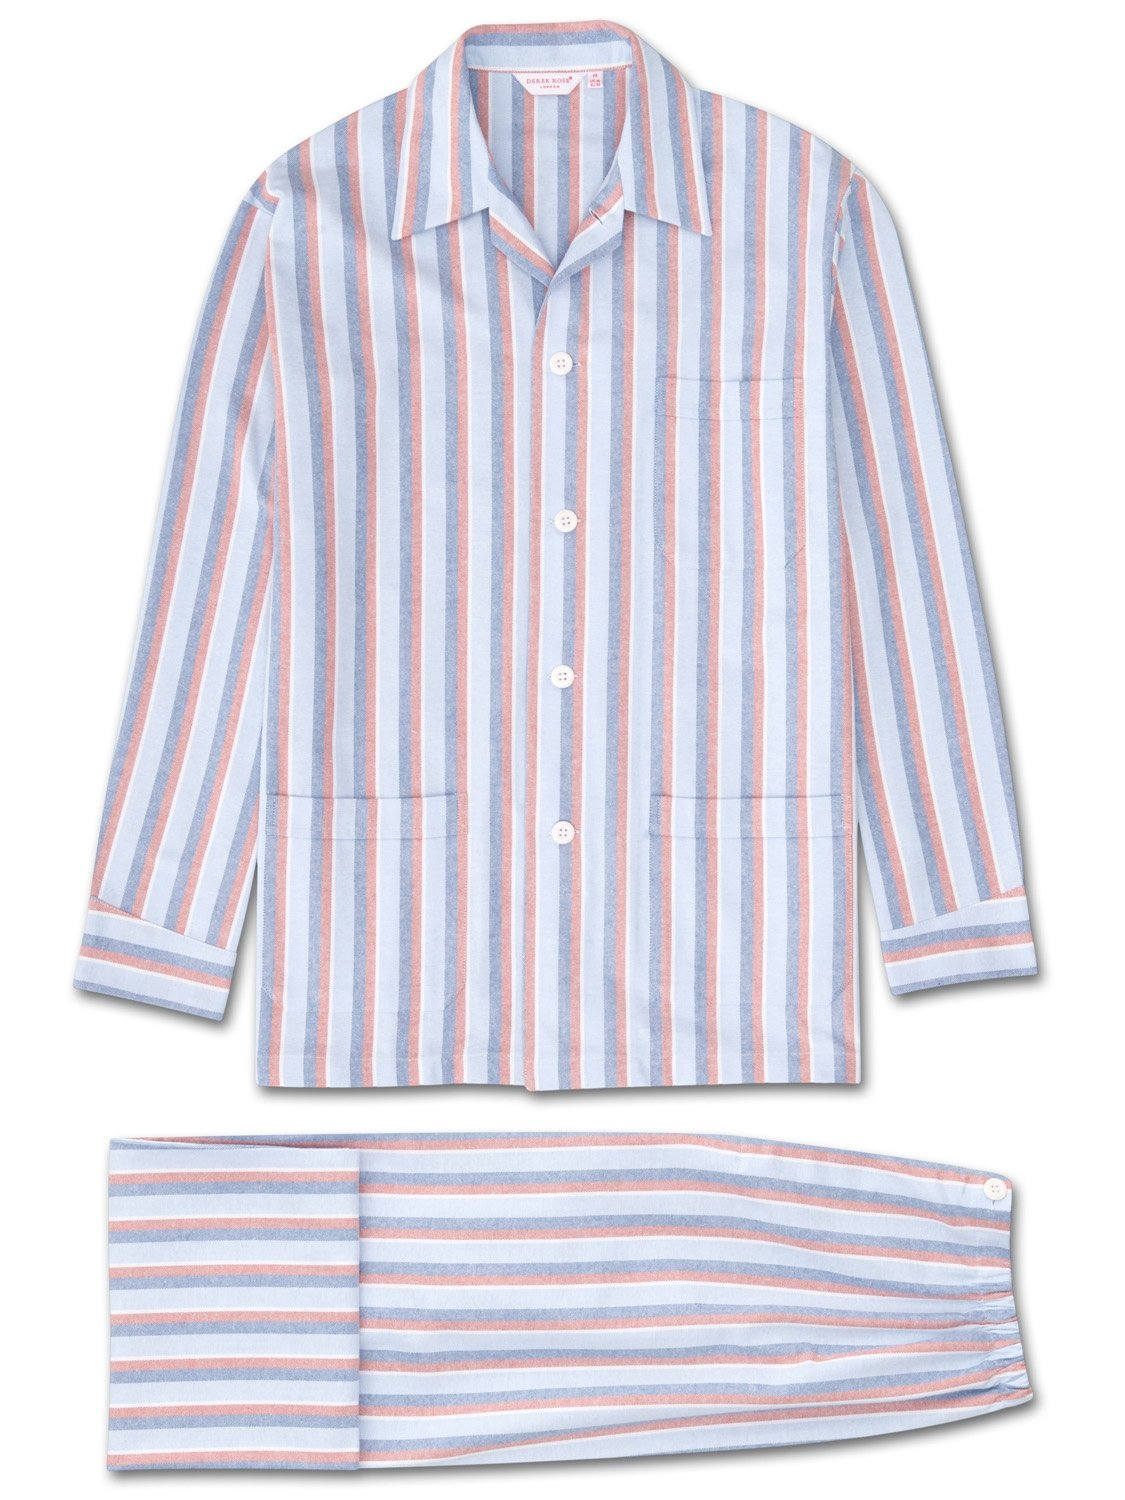 Men's Classic Fit Pyjamas Arran 87 Brushed Cotton Stripe Rust